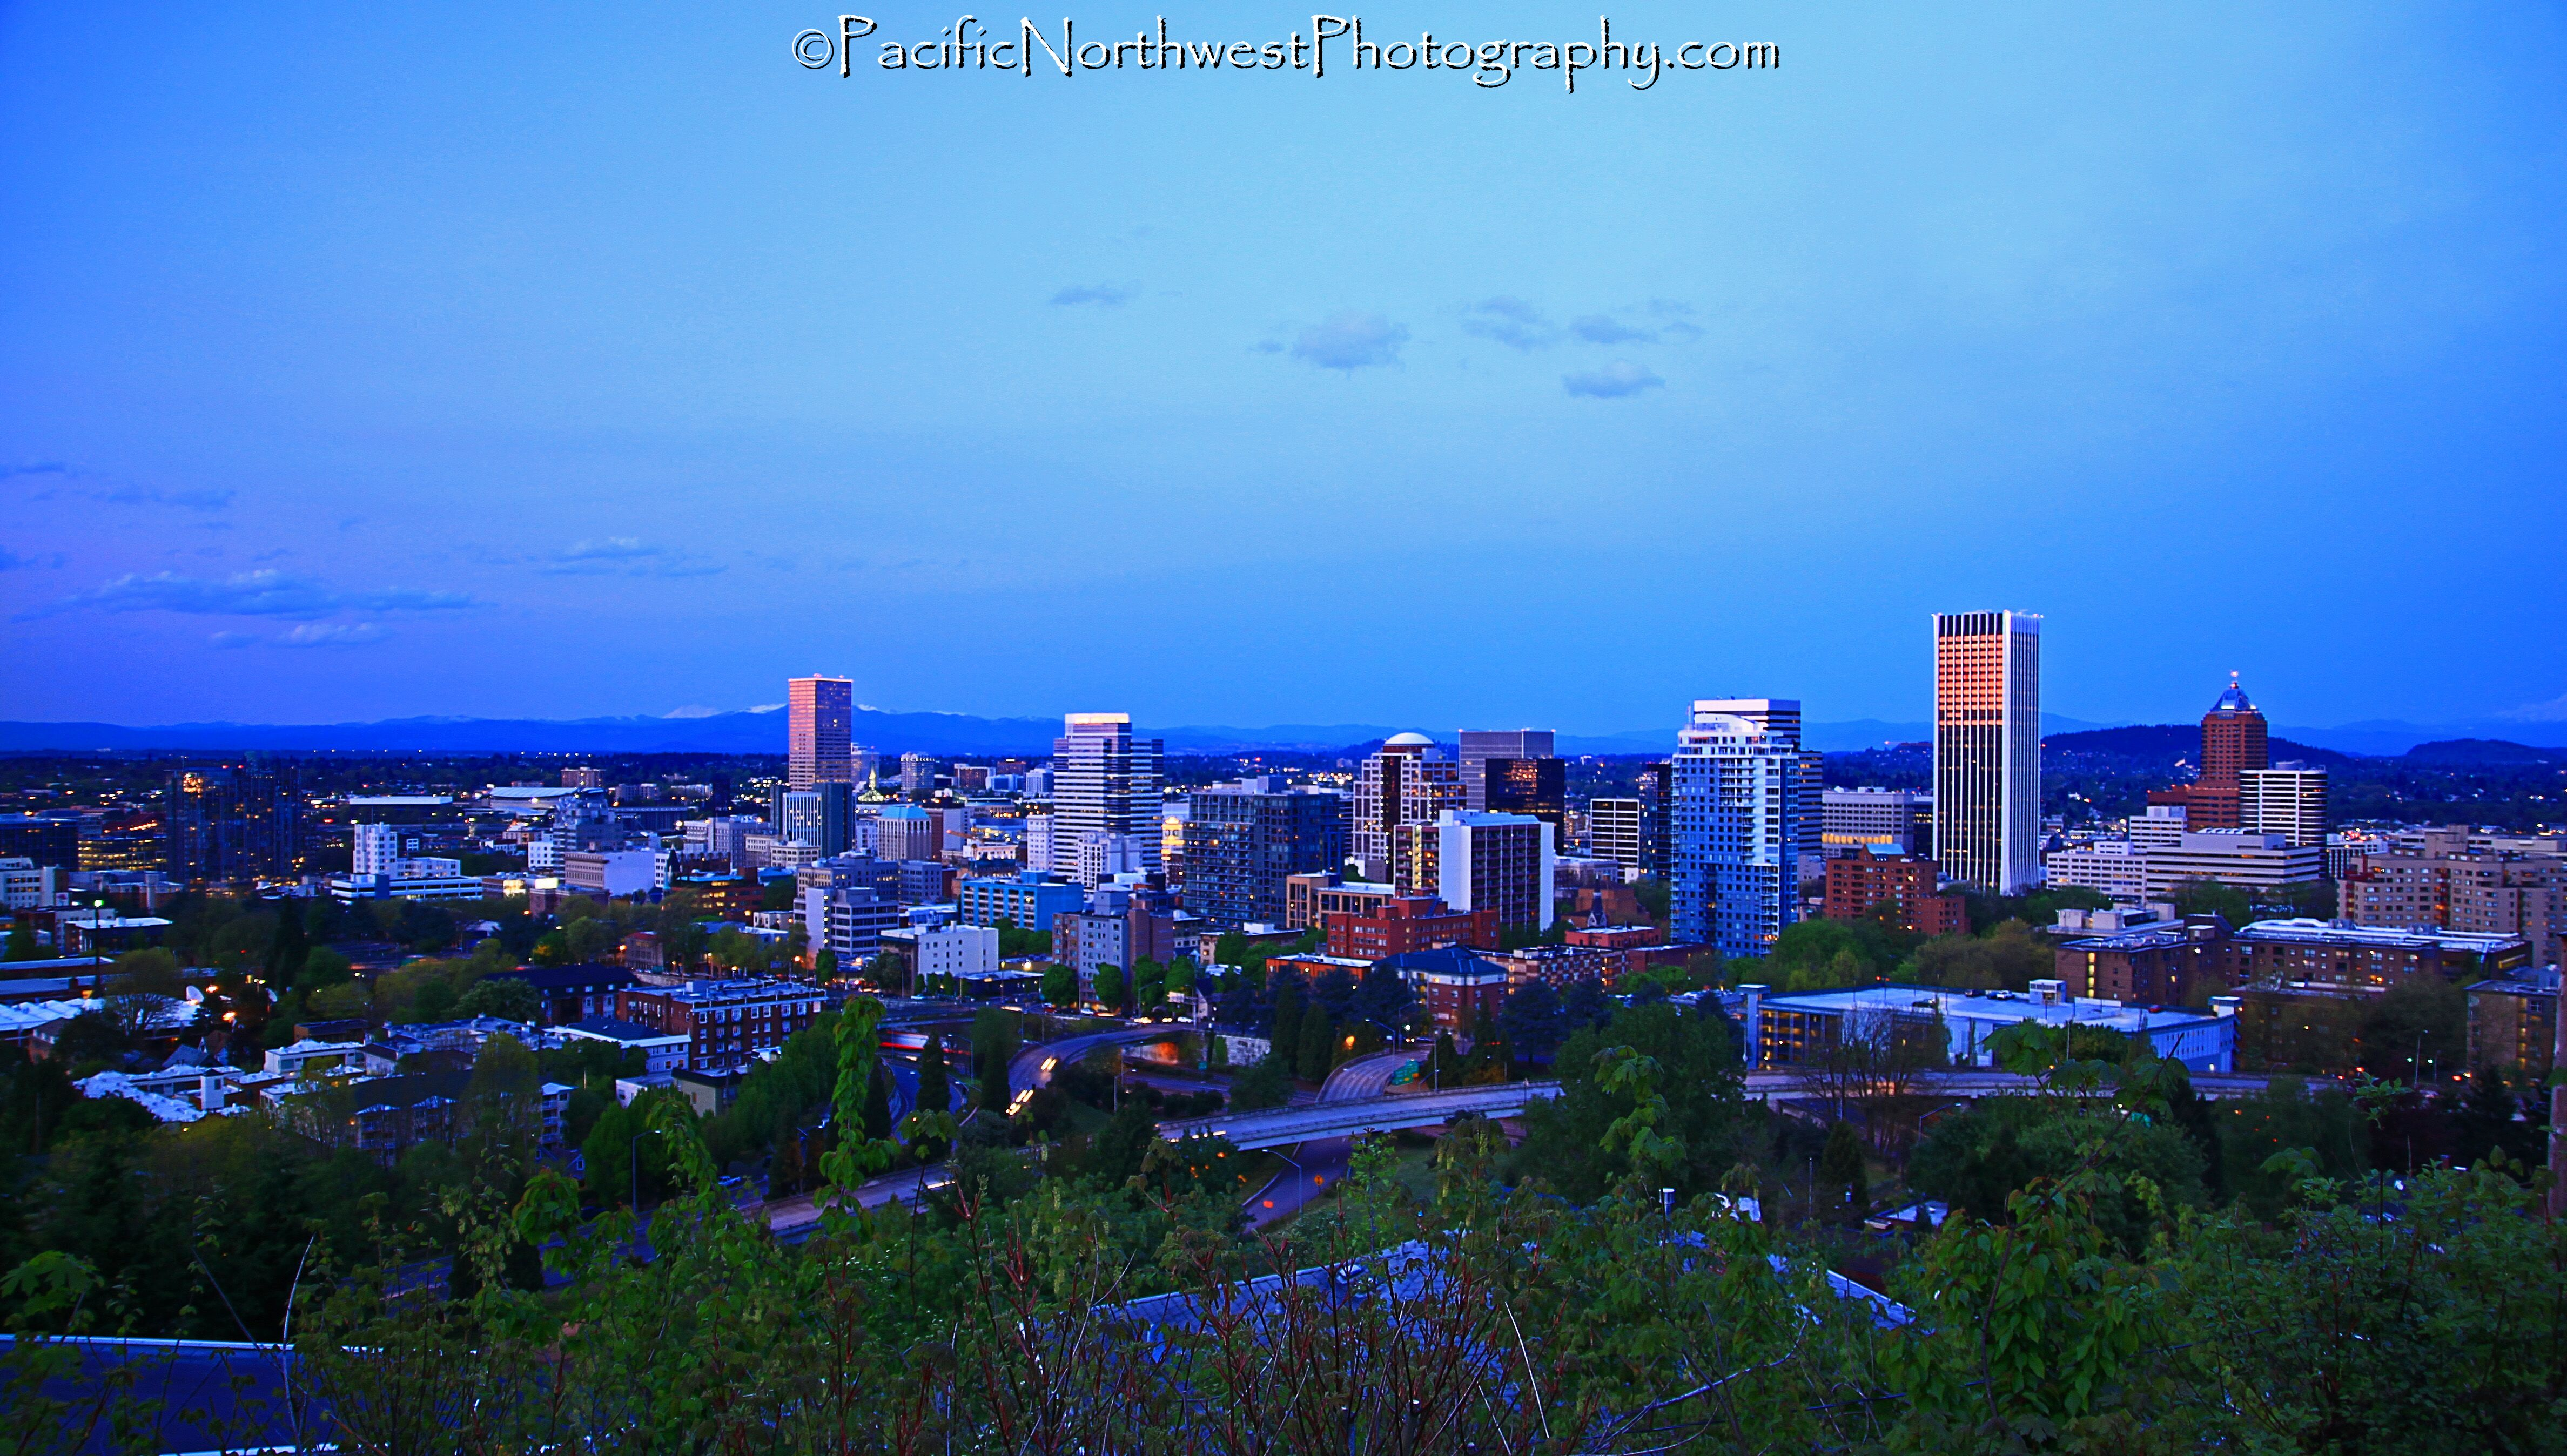 Downtown Portland just after sunset